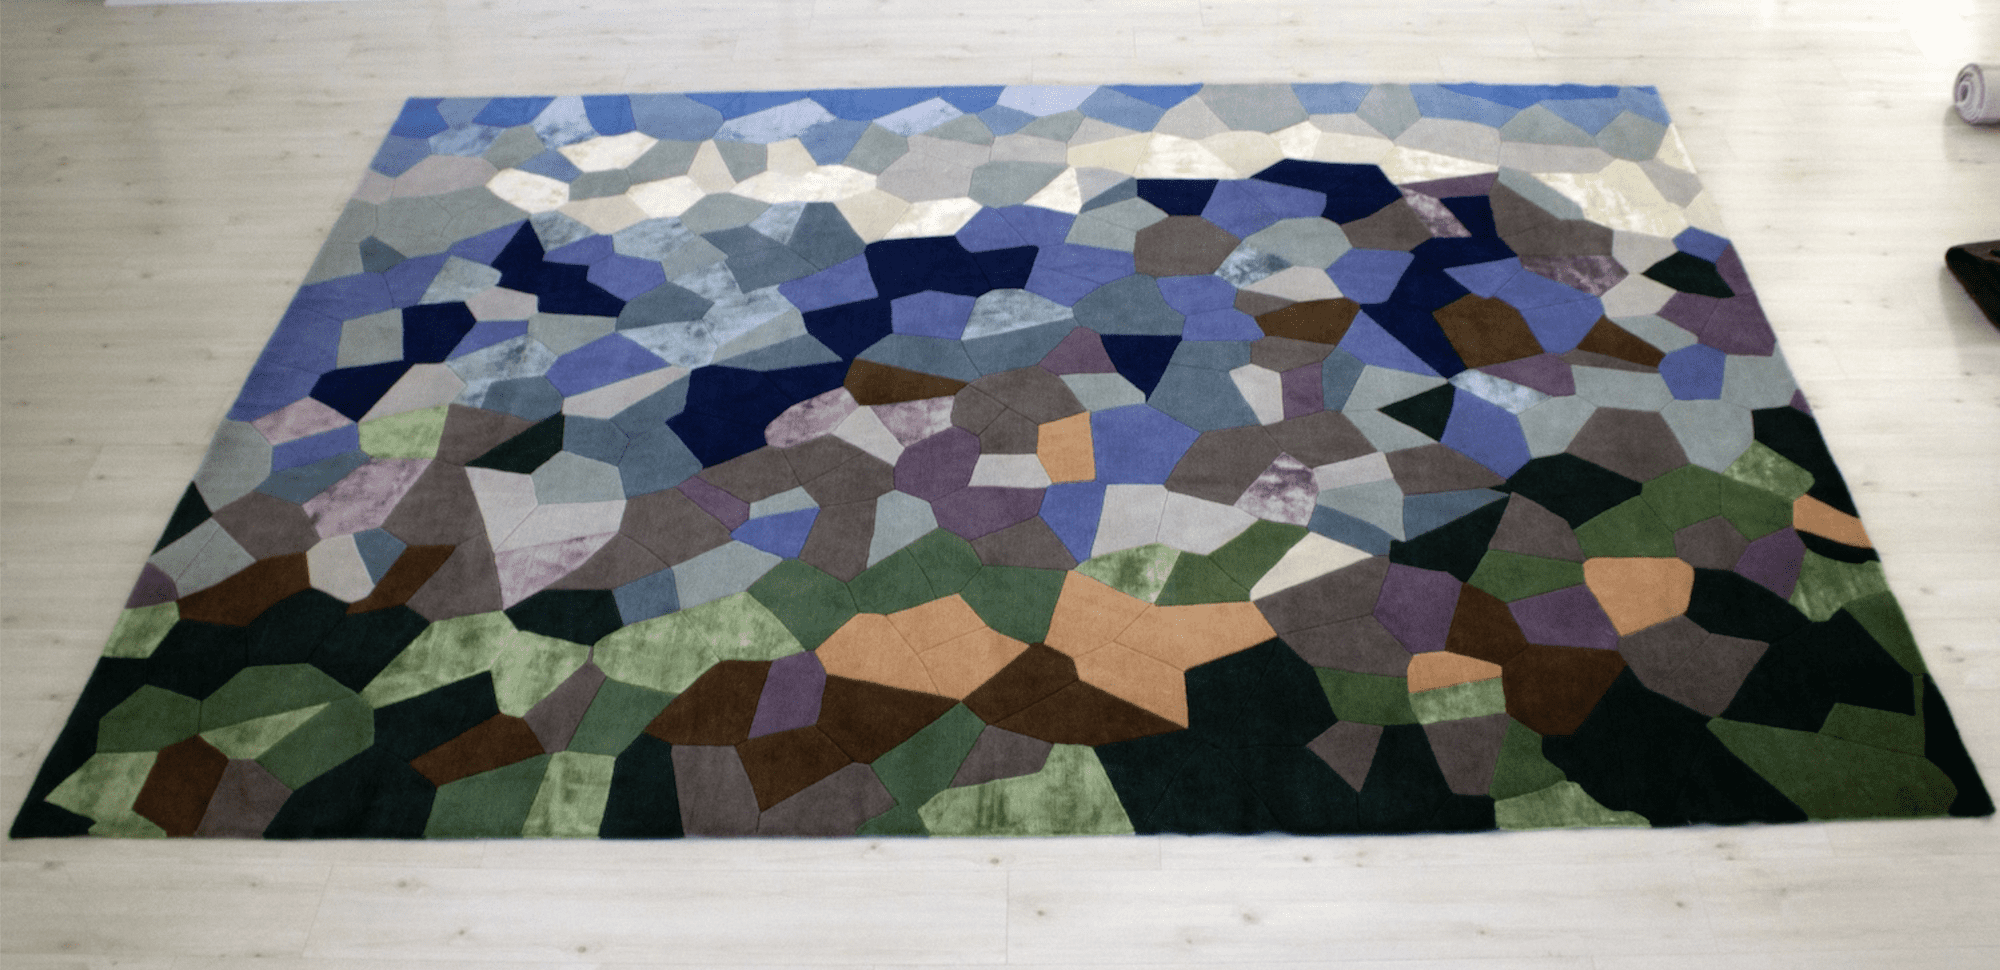 El Avila – The iconic mountain in an artist abstraction